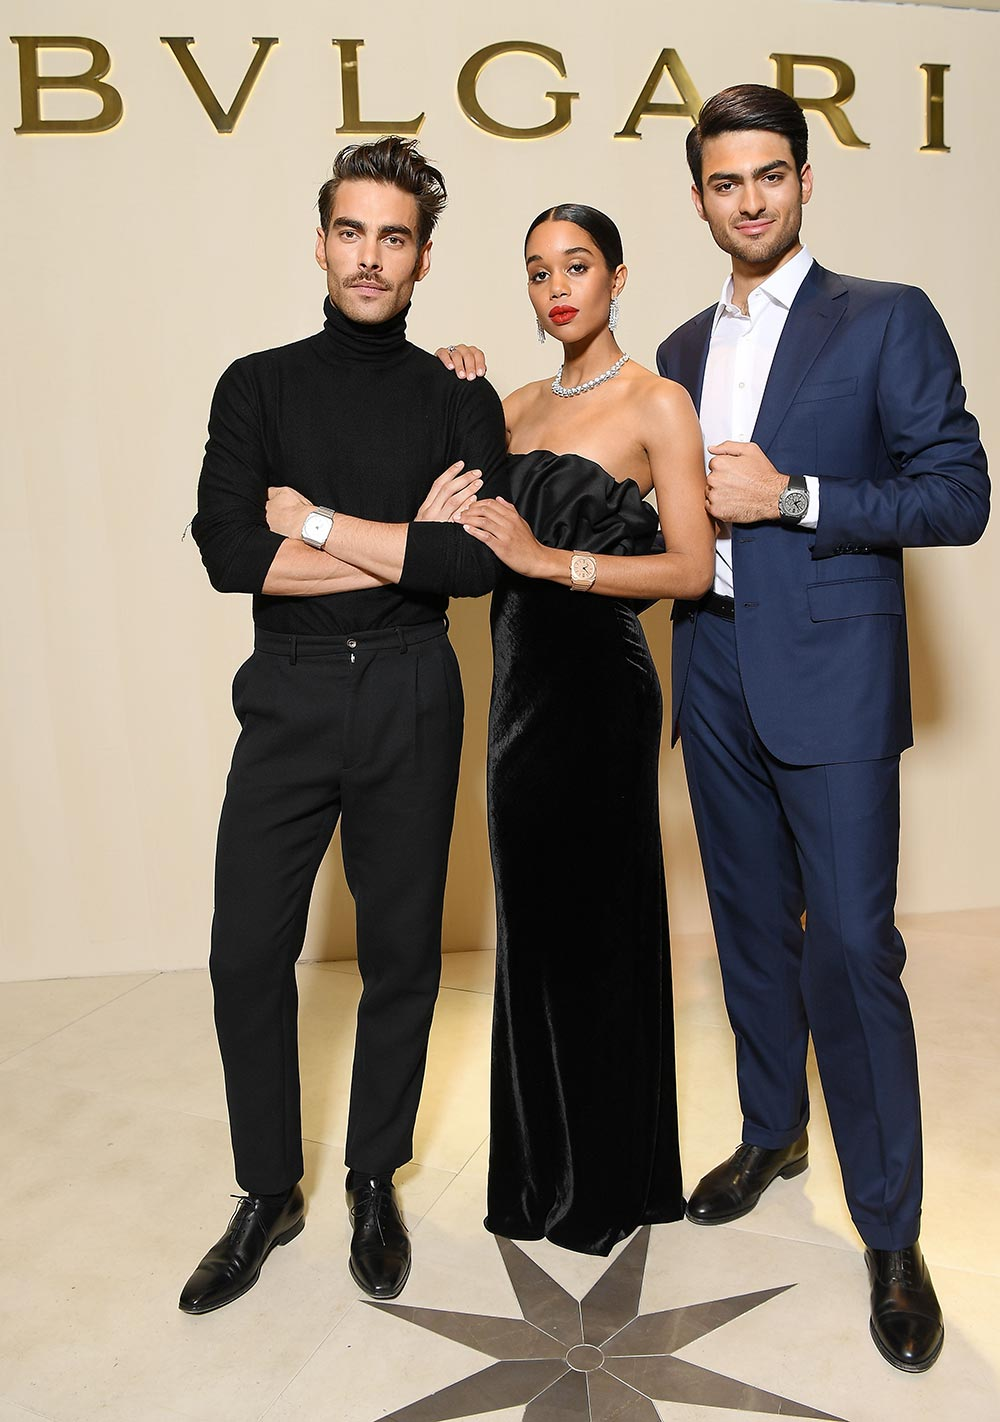 Bulgari Basel Press Party - Jon Kortajarena, Laura Harrier, Matteo Bocelli - Hair & makeup Massimo Serini